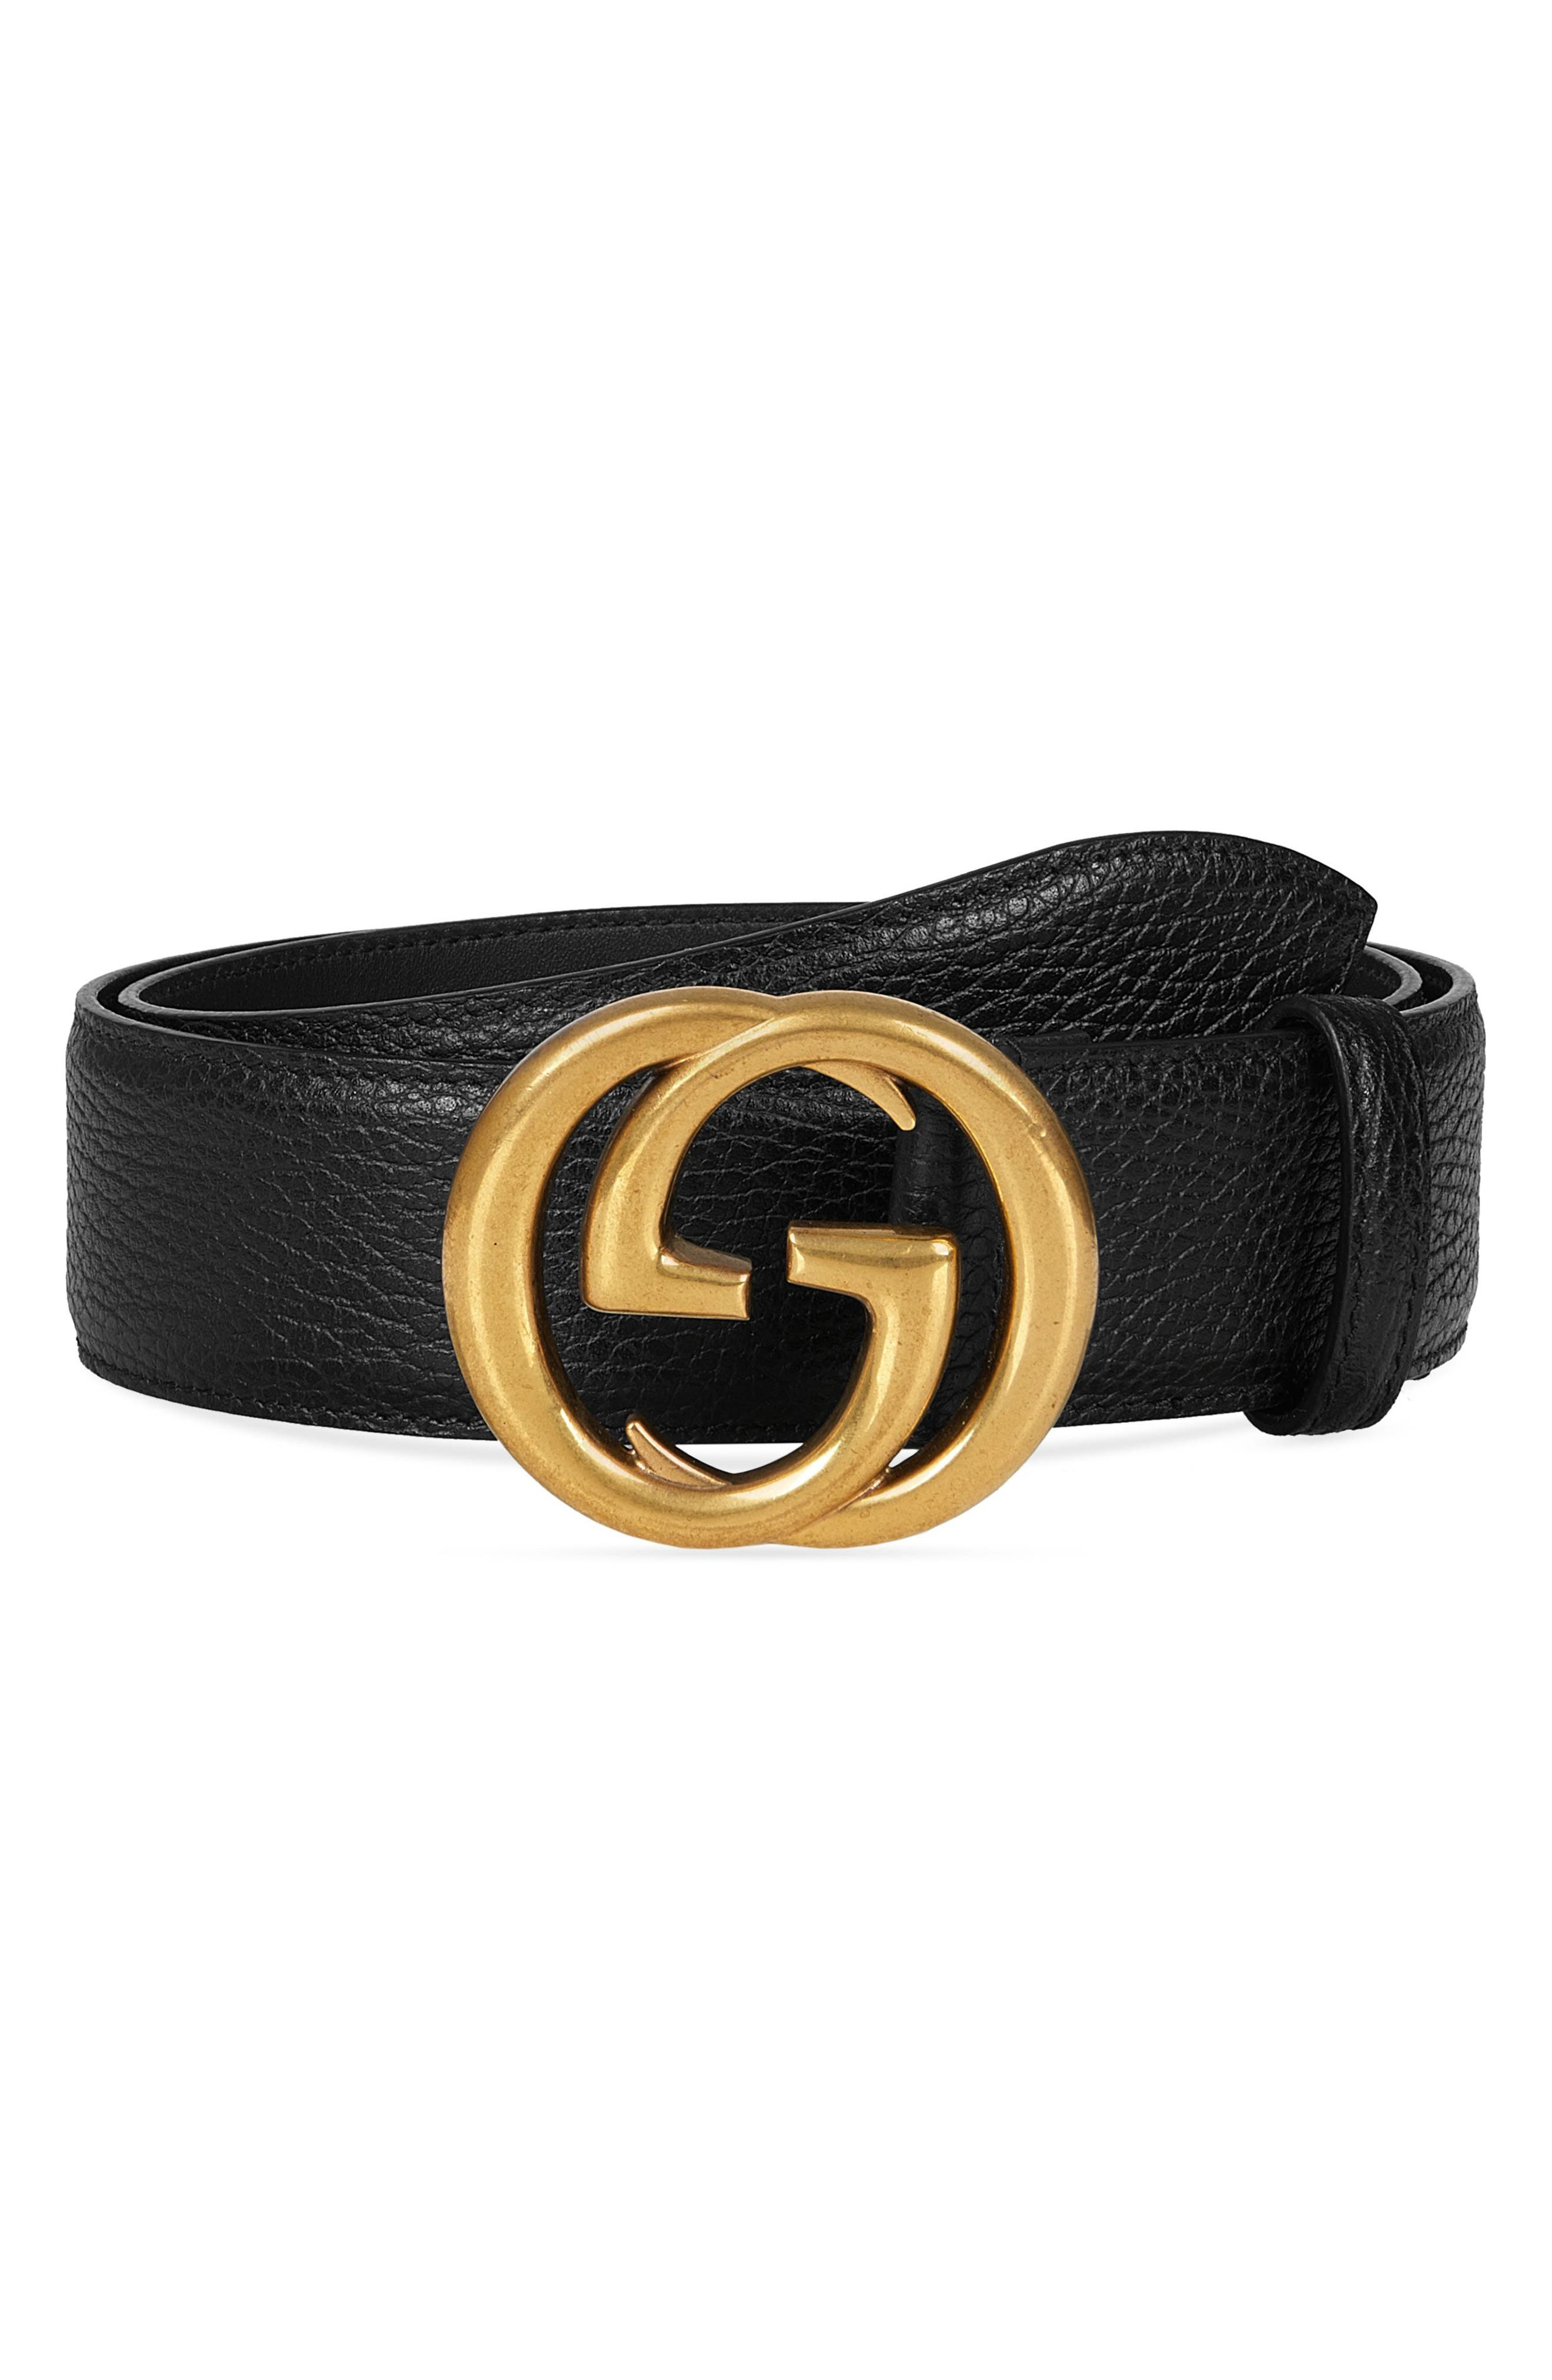 GUCCI, Interlocking-G Calfskin Leather Belt, Main thumbnail 1, color, BLACK